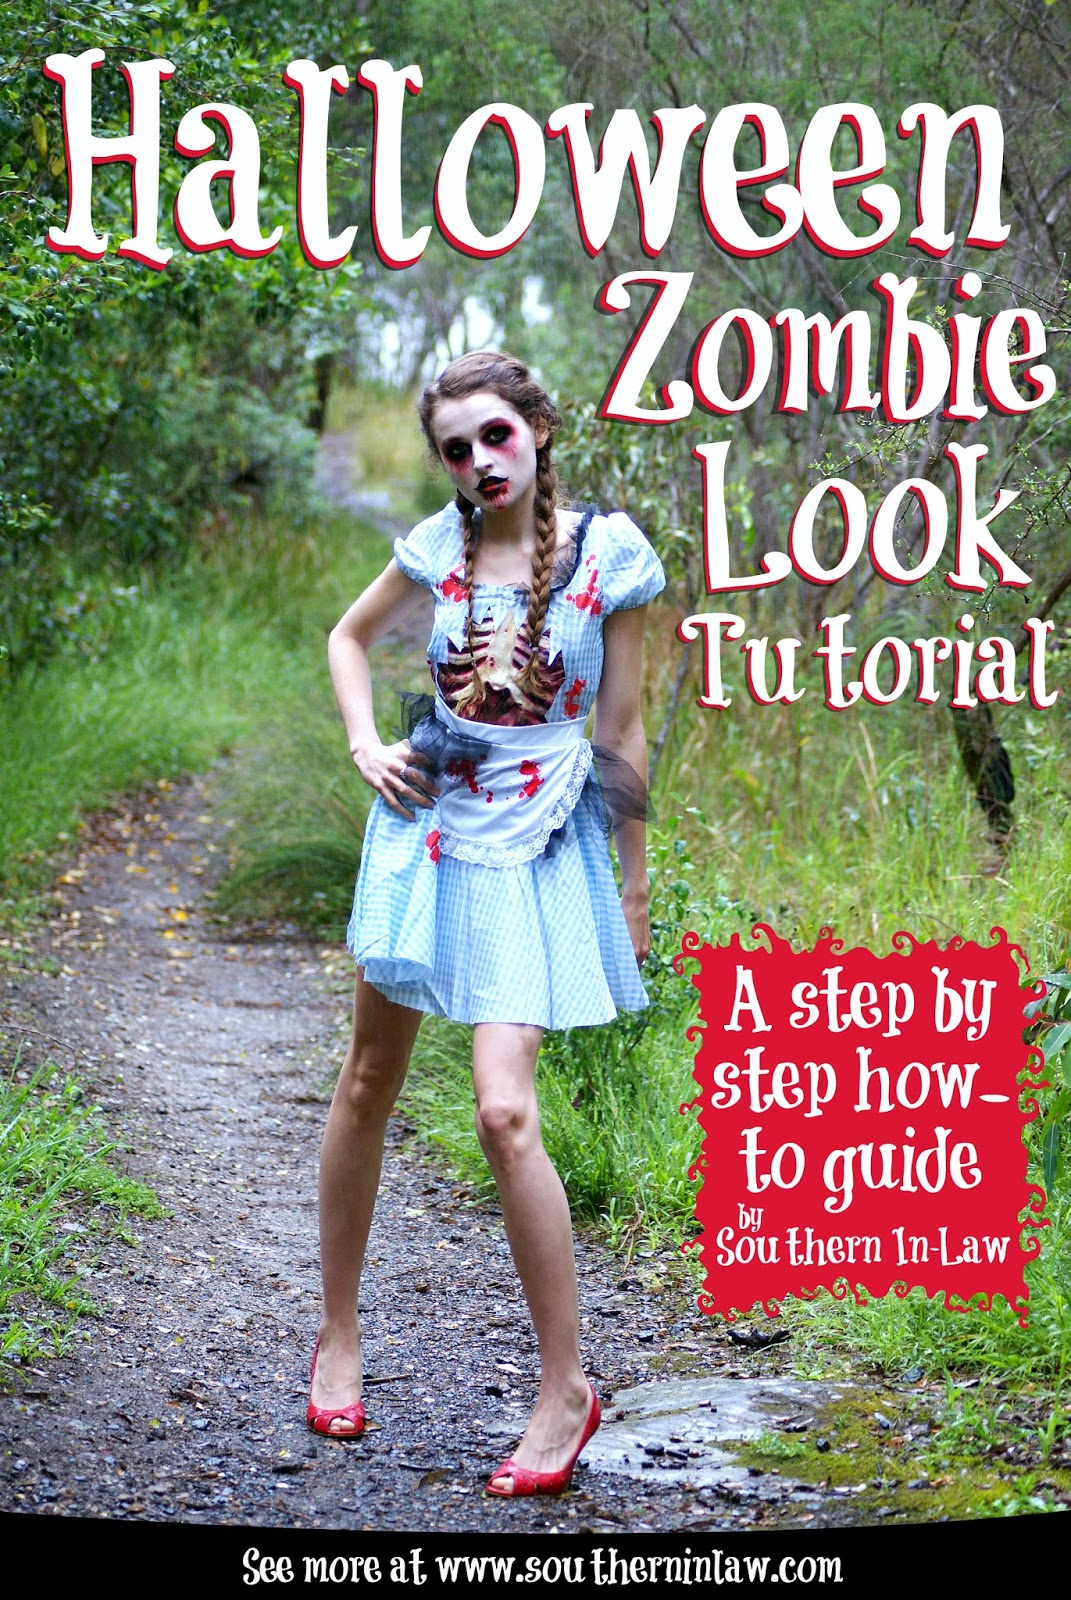 southern in law: stepstep halloween zombie look tutorial